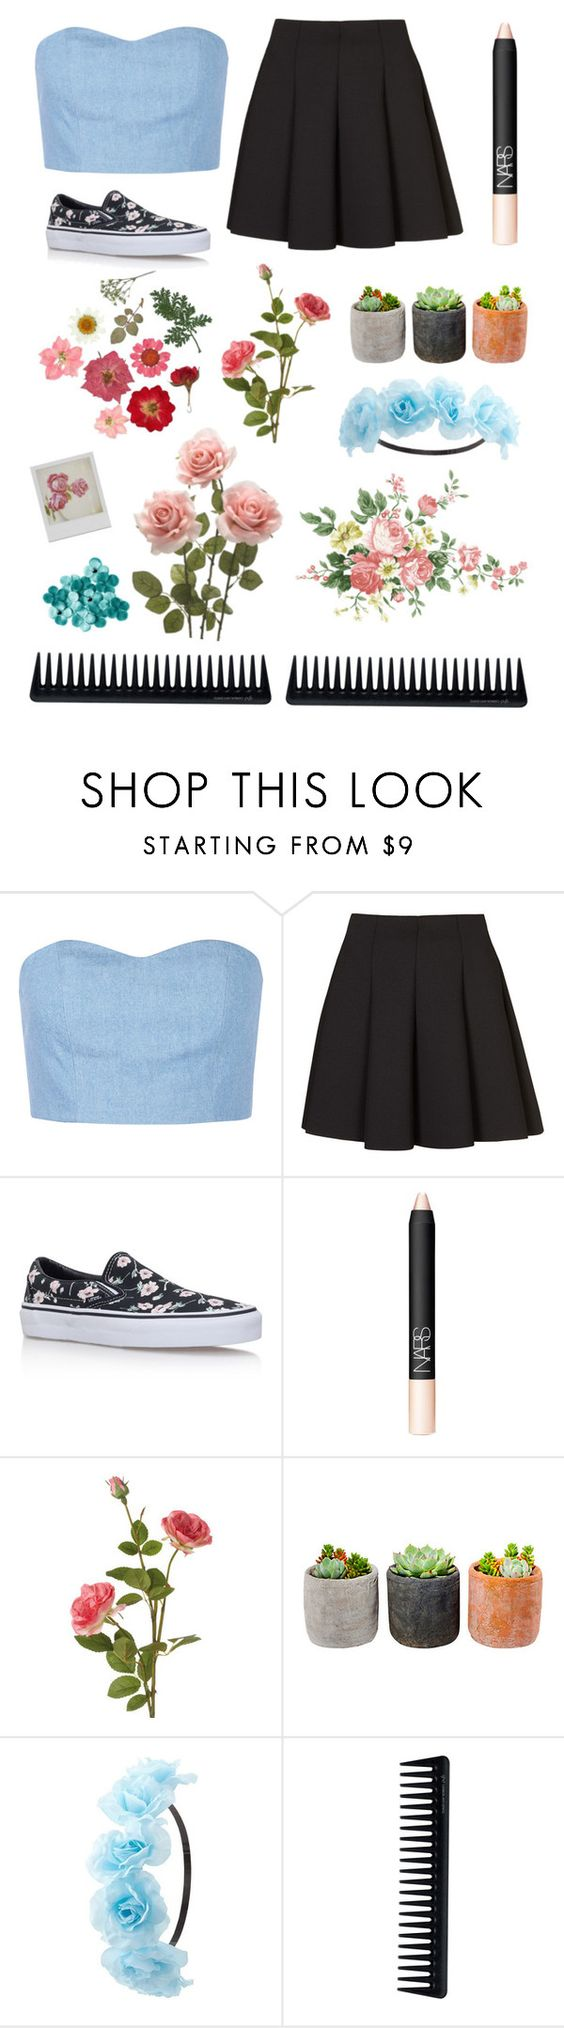 """""""fleurs"""" by to-wear-a-mockingbird ❤ liked on Polyvore featuring Julien David, Topshop, Vans, NARS Cosmetics, OKA, Shop Succulents, Charlotte Russe, Disney and GHD"""